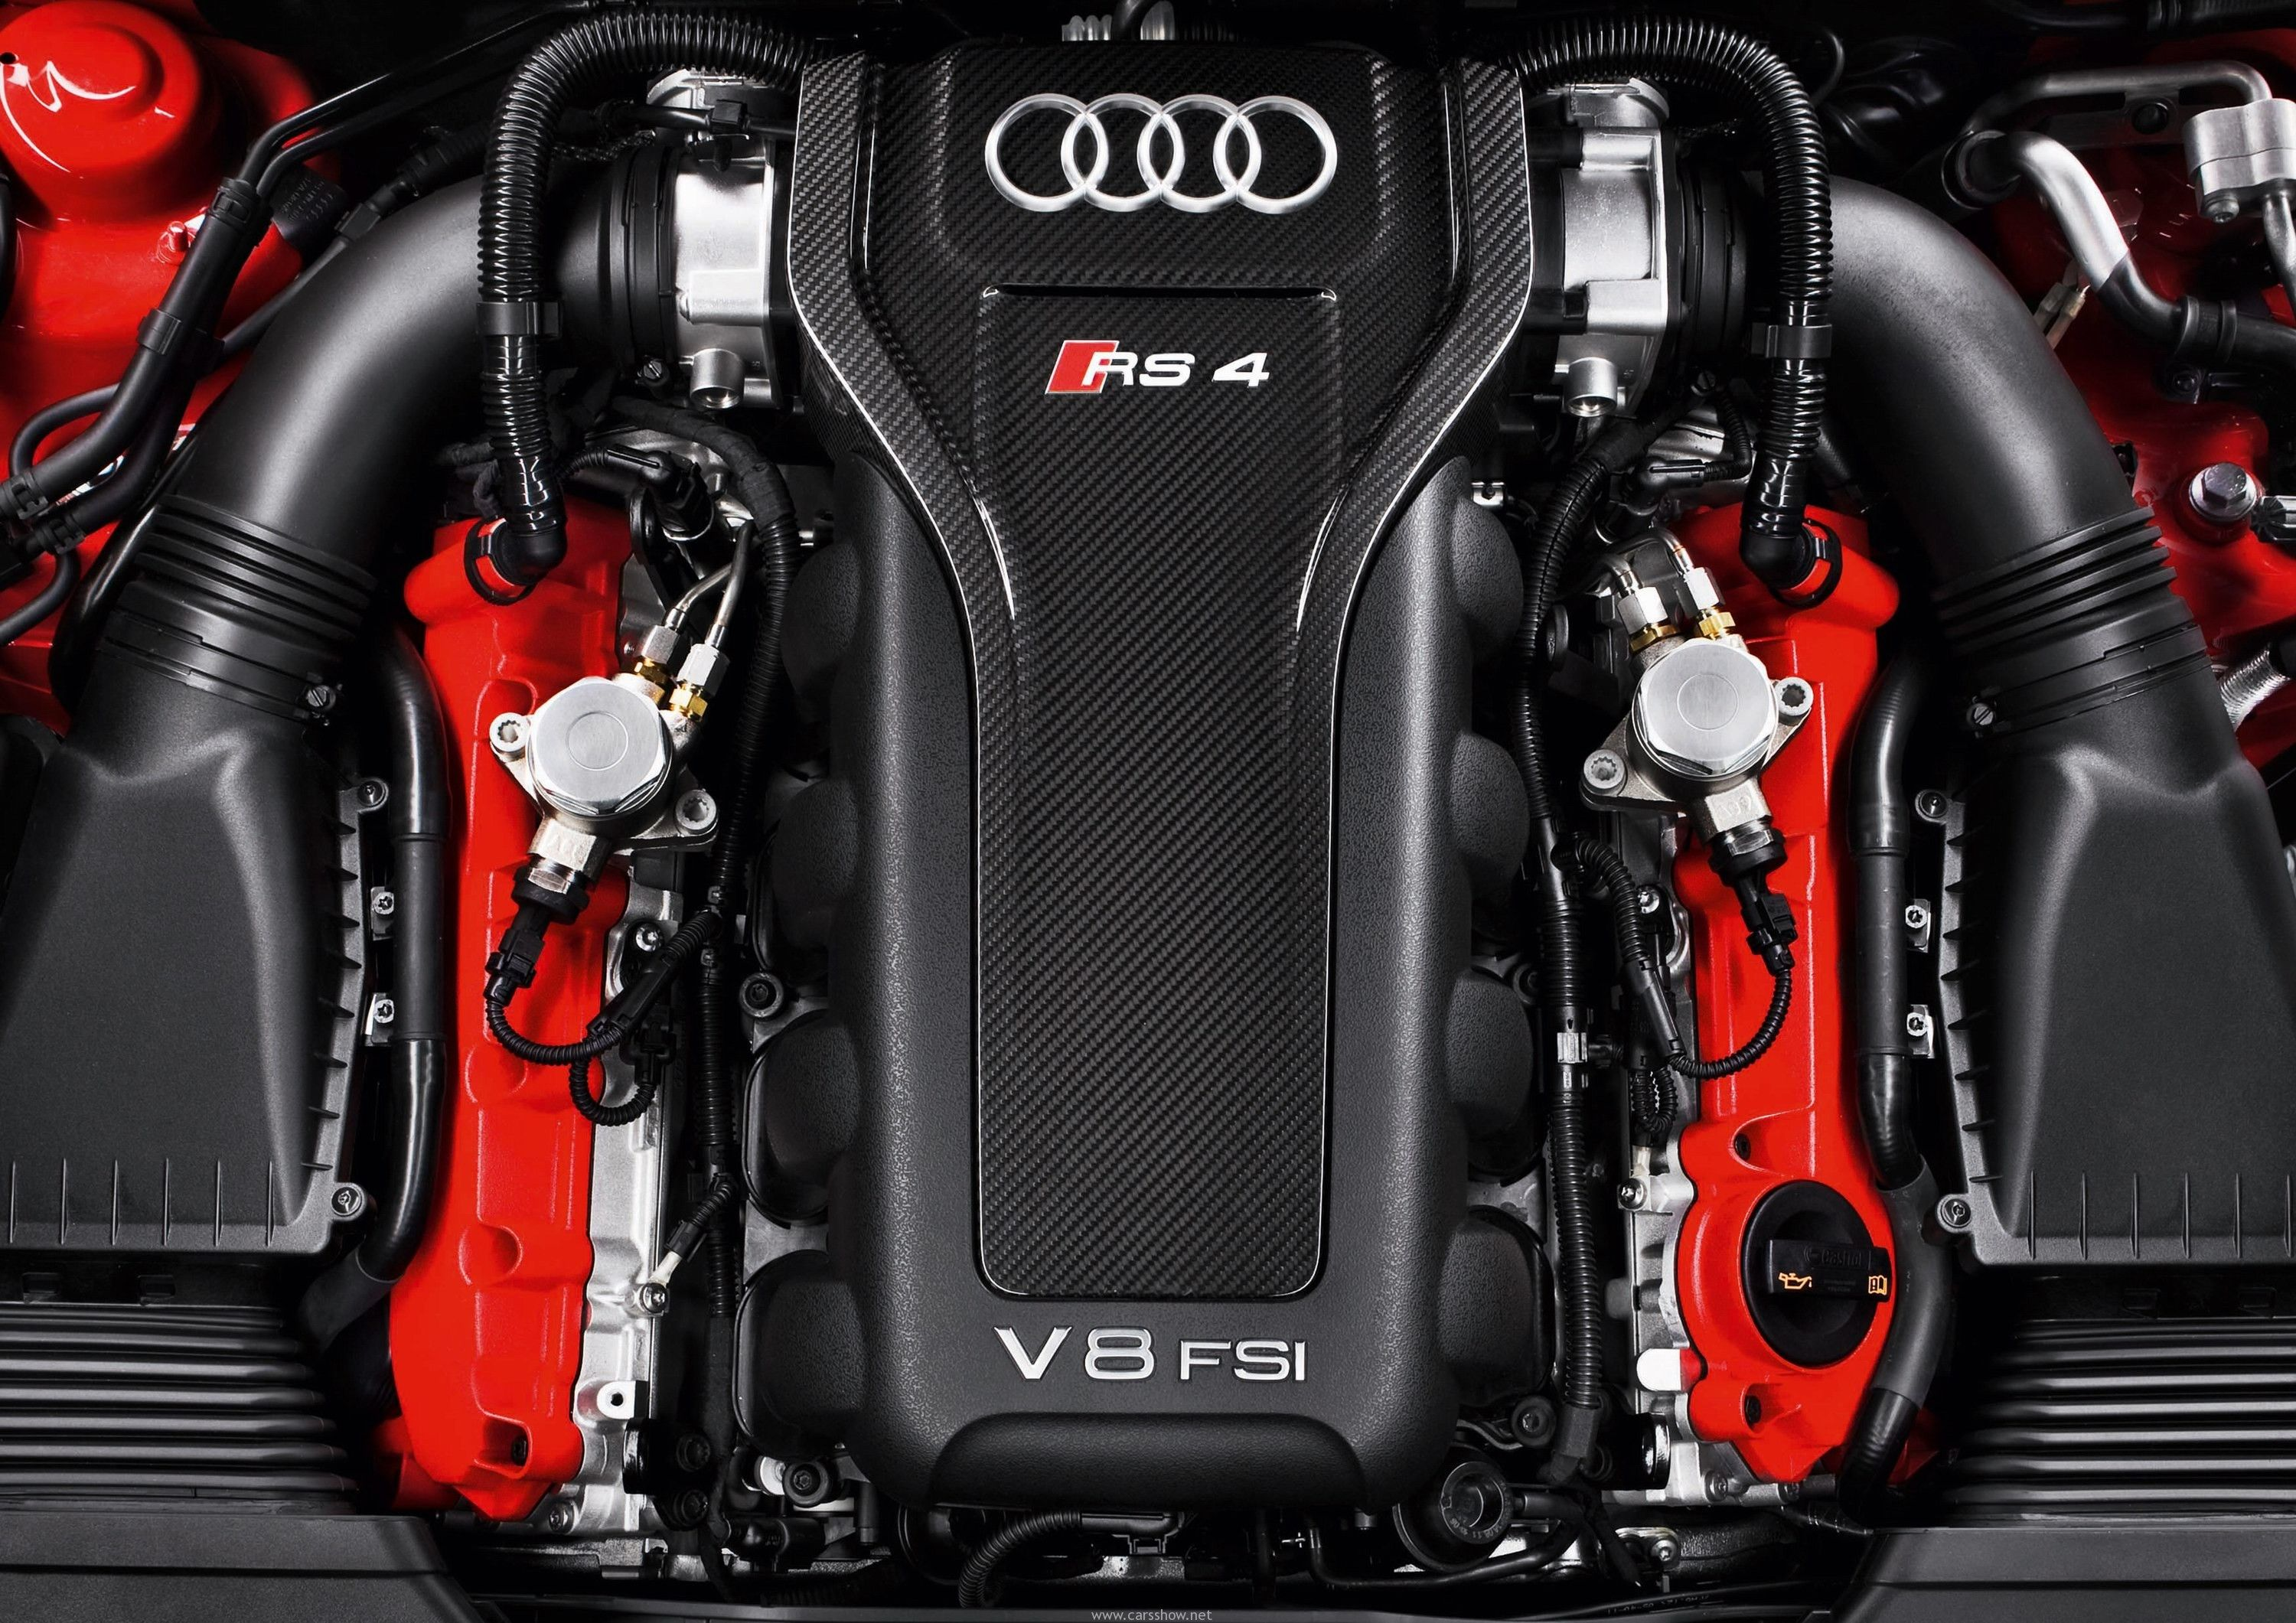 2012 Audi Rs4 Avant Engine Bay Car Wallpapers Free Download Audi Rs4 Avant Rs4 Avant Audi Rs4